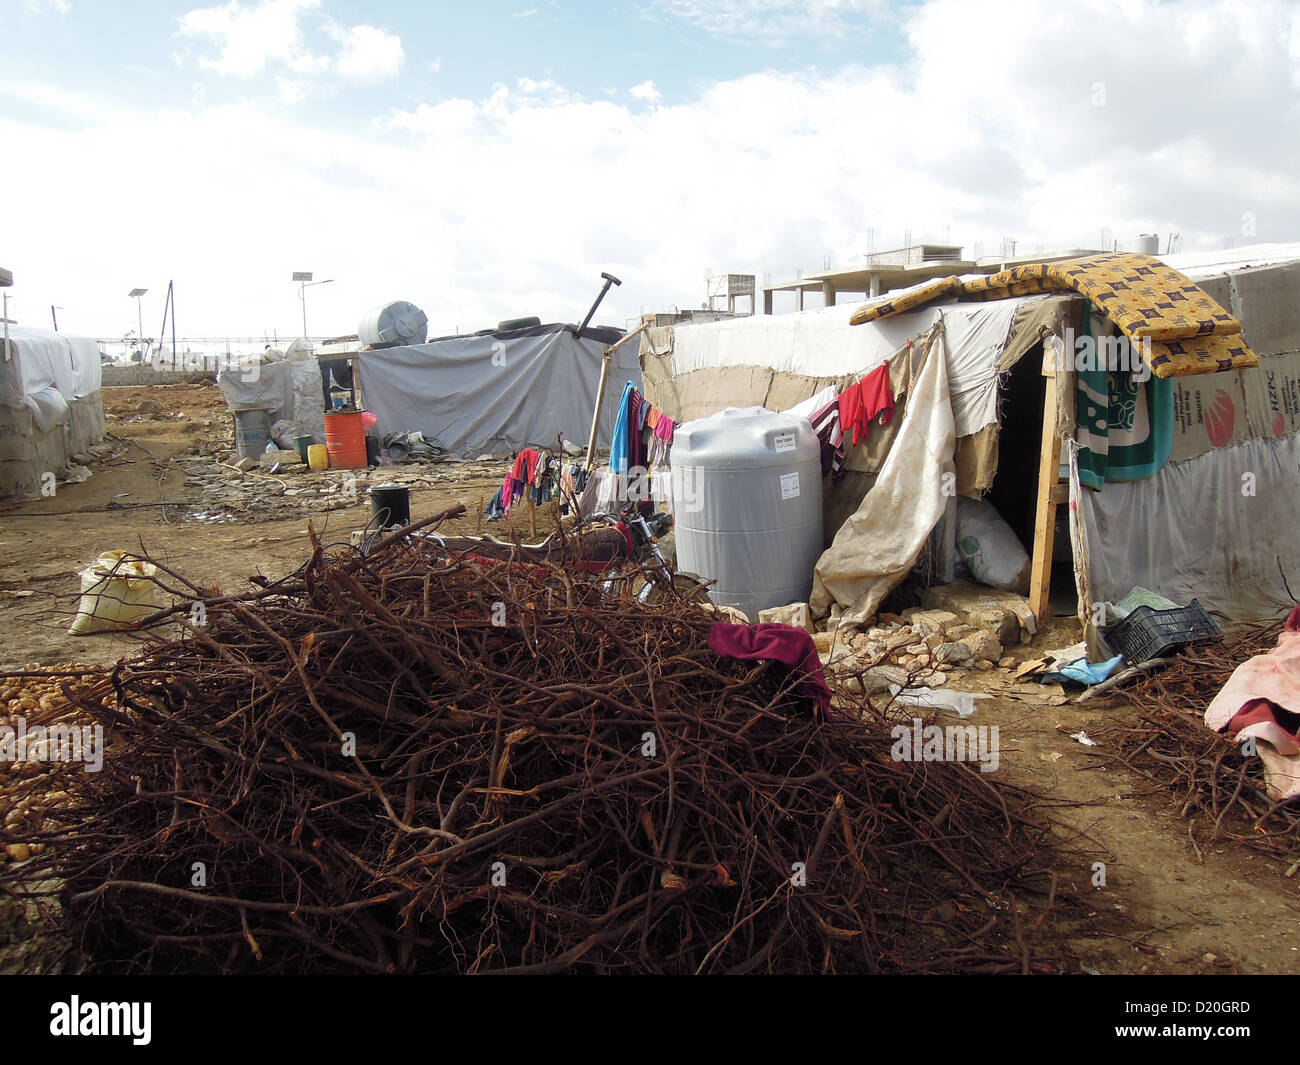 a camp for Syrian refugees near the town zahl in sout lebanon. the baracks are made from tarp over wooden frames. - Stock Image